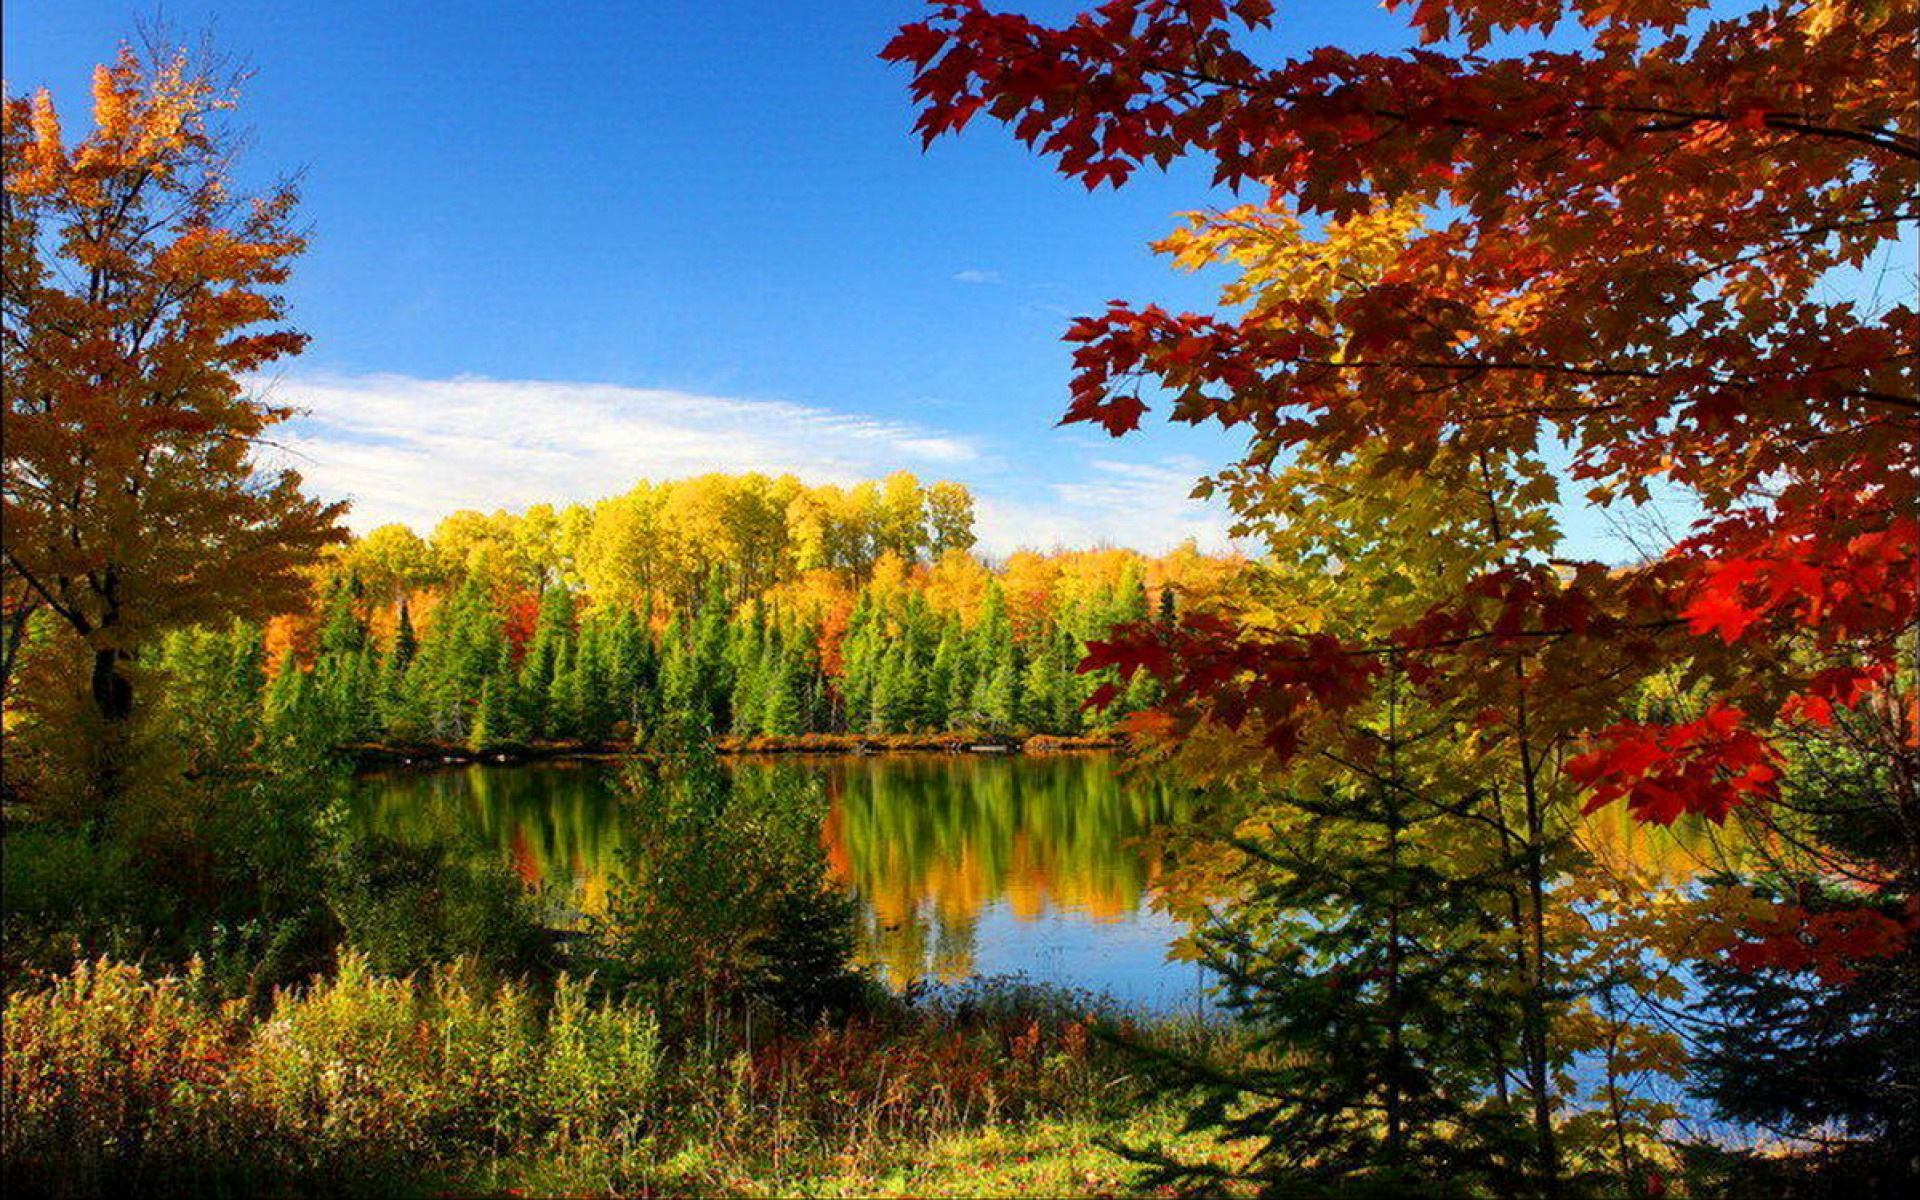 Lake placid wallpaper wallpapersafari for Desktop sfondi autunno